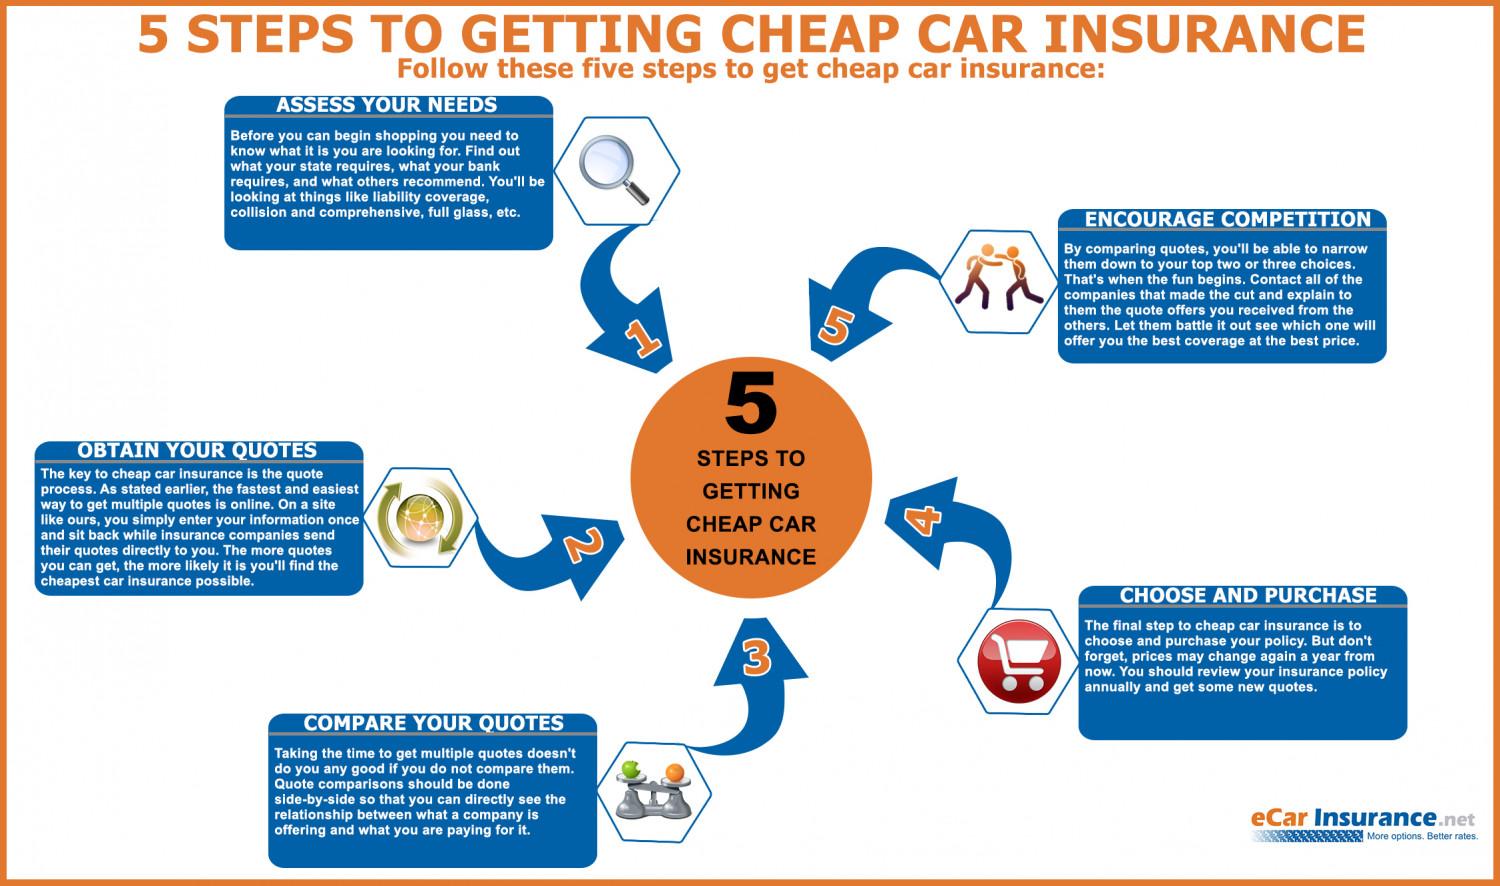 Get Cheap Insurance 5 Steps To Getting Cheap Car Insurance Visual Ly